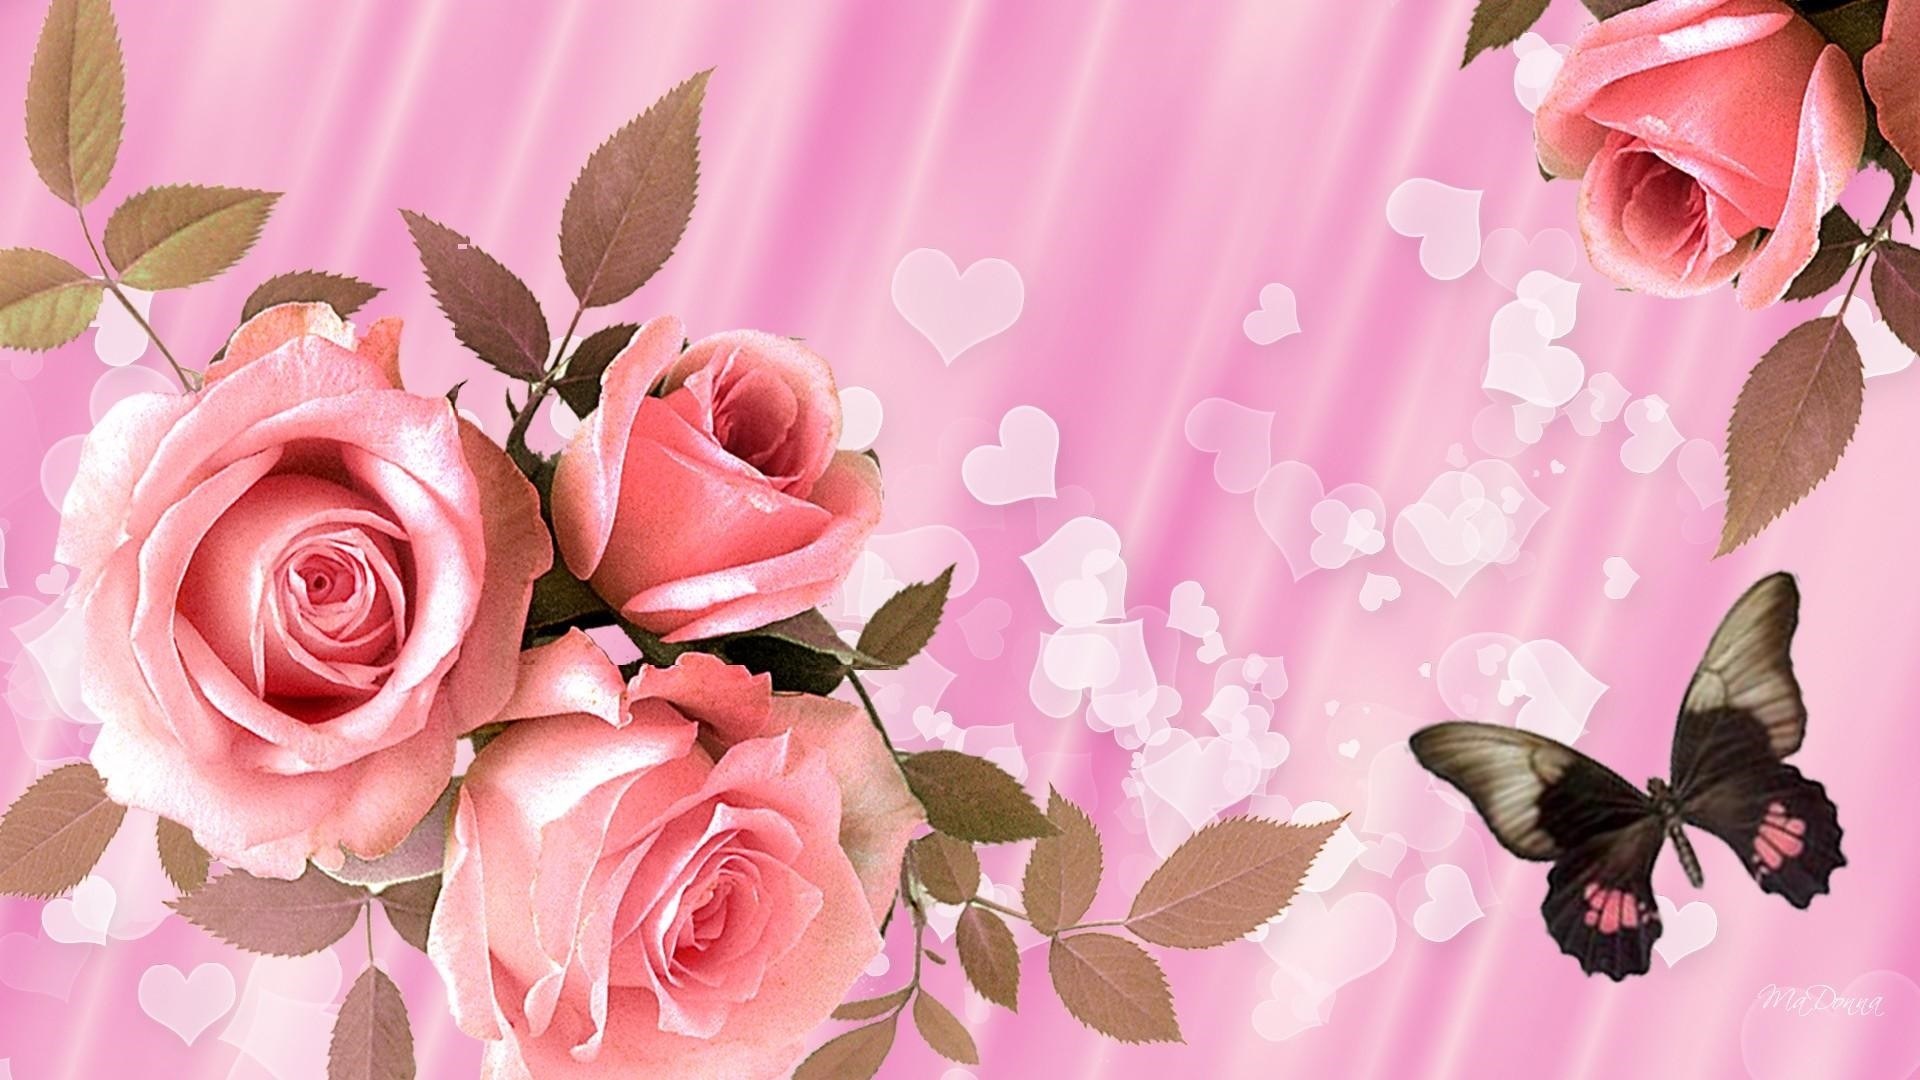 Pink Rose Desktop Wallpaper